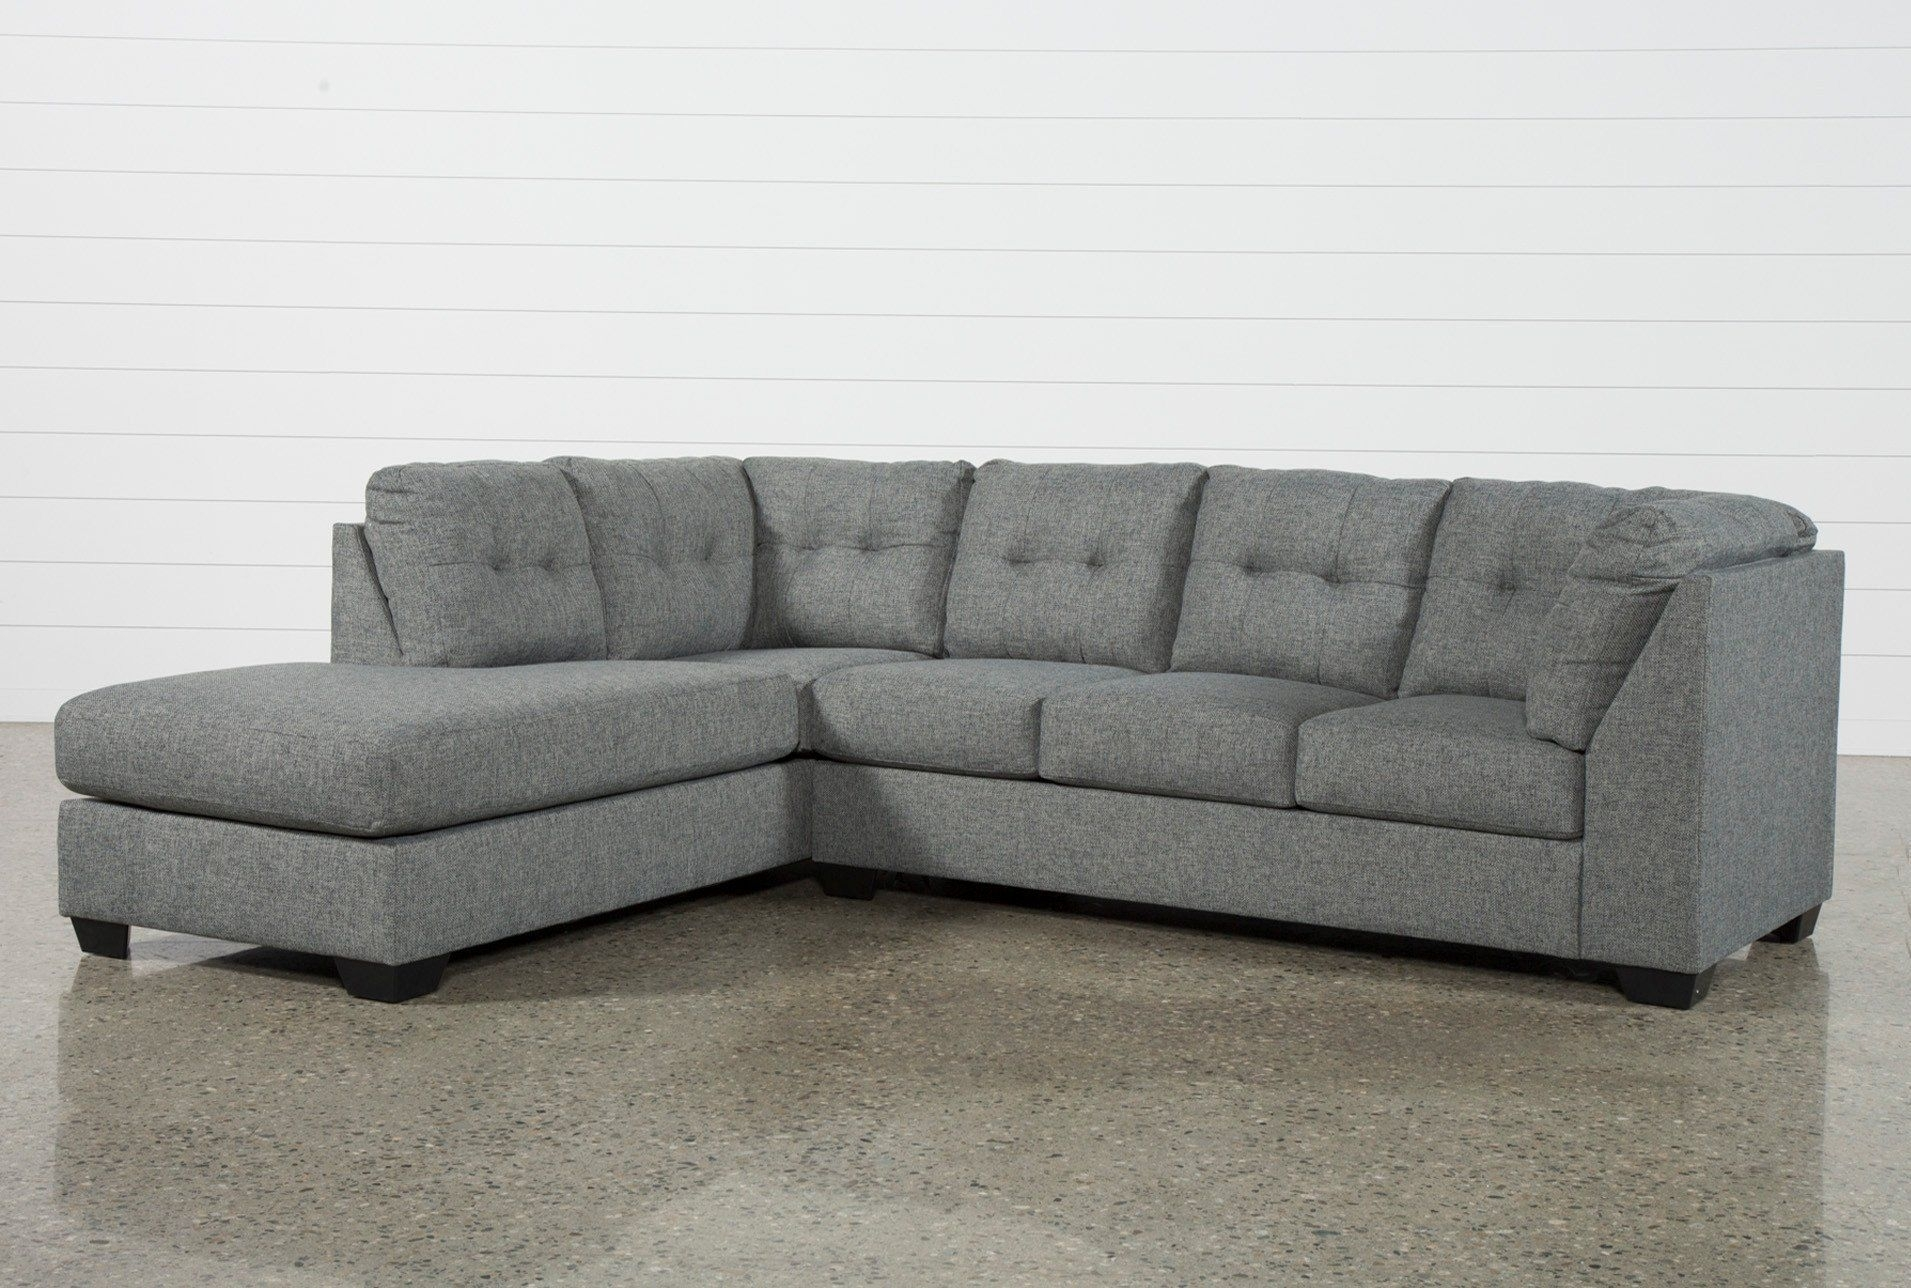 Cosmos Grey 2 Piece Sectional W/laf Chaise | Quilling | Pinterest With Regard To Cosmos Grey 2 Piece Sectionals With Laf Chaise (View 3 of 25)